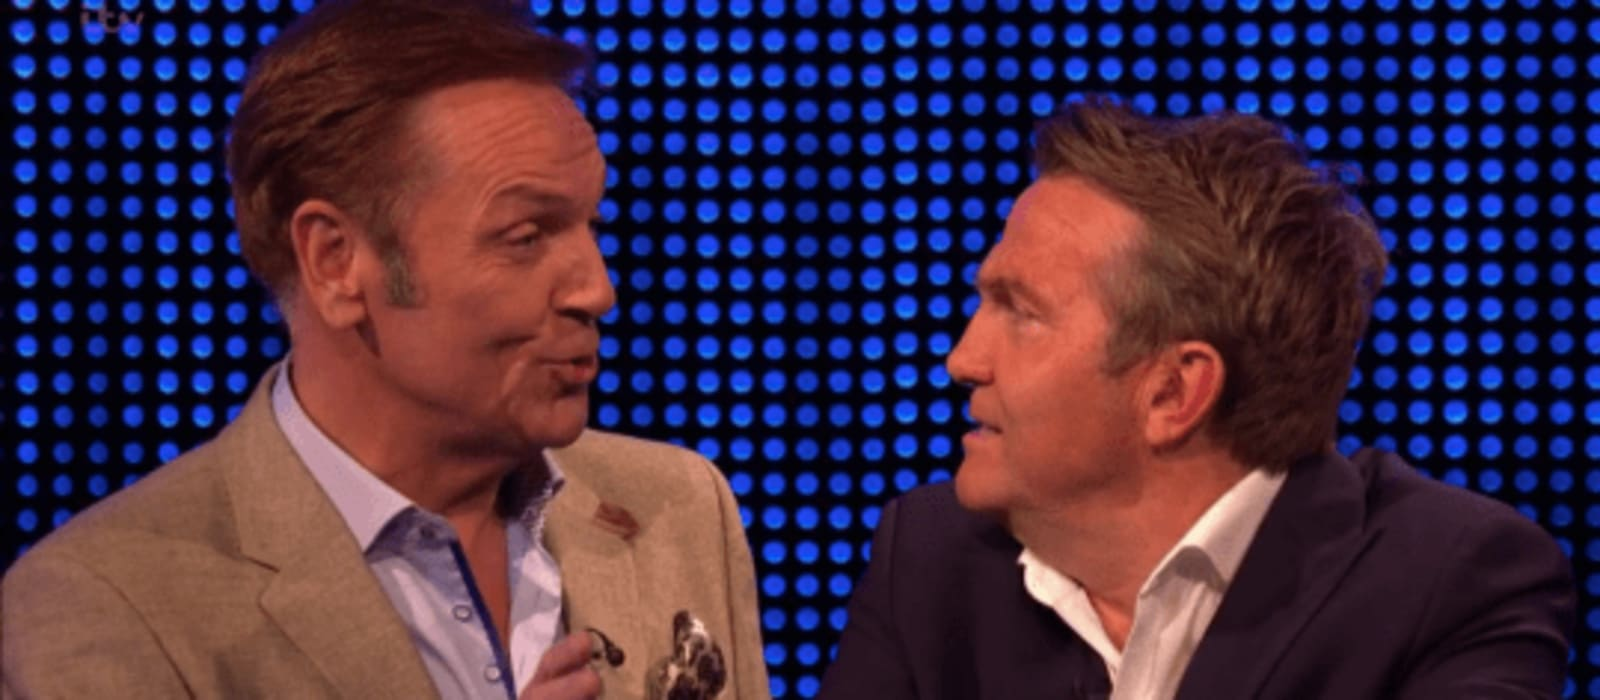 Hire a Hero Patron, Brian Conley on ITV's The Chase.